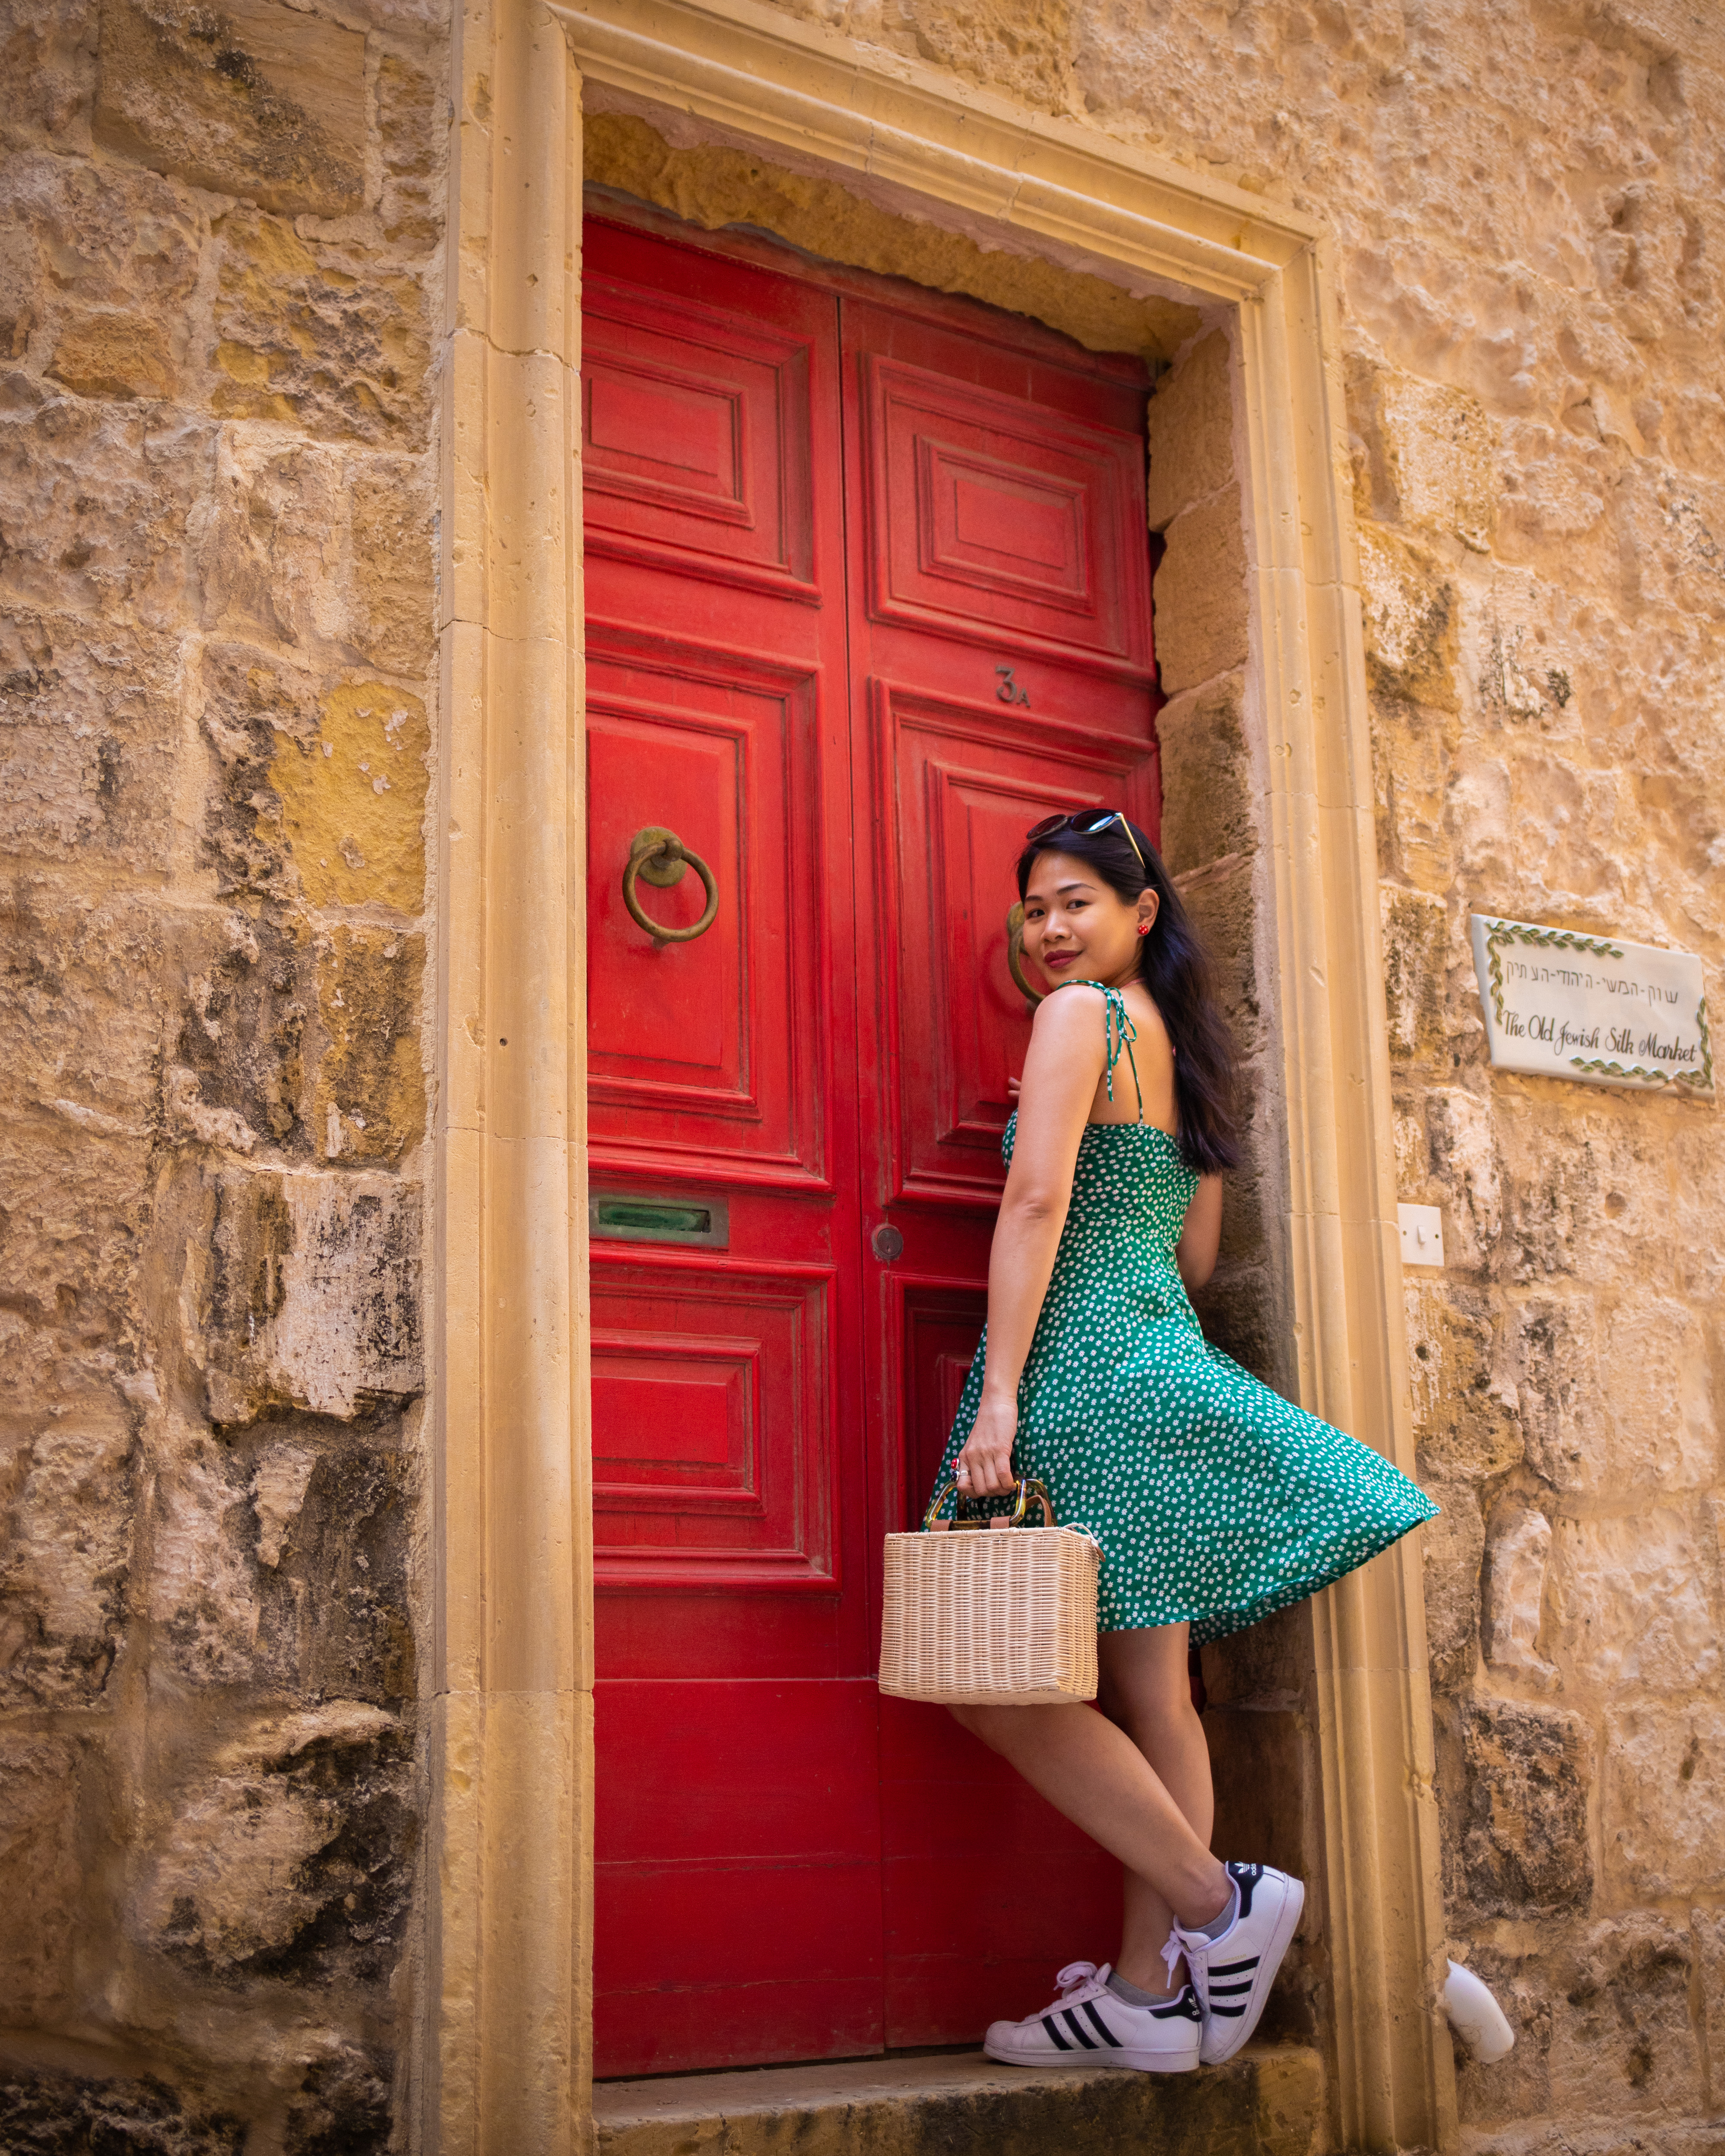 With the red door at Mdina